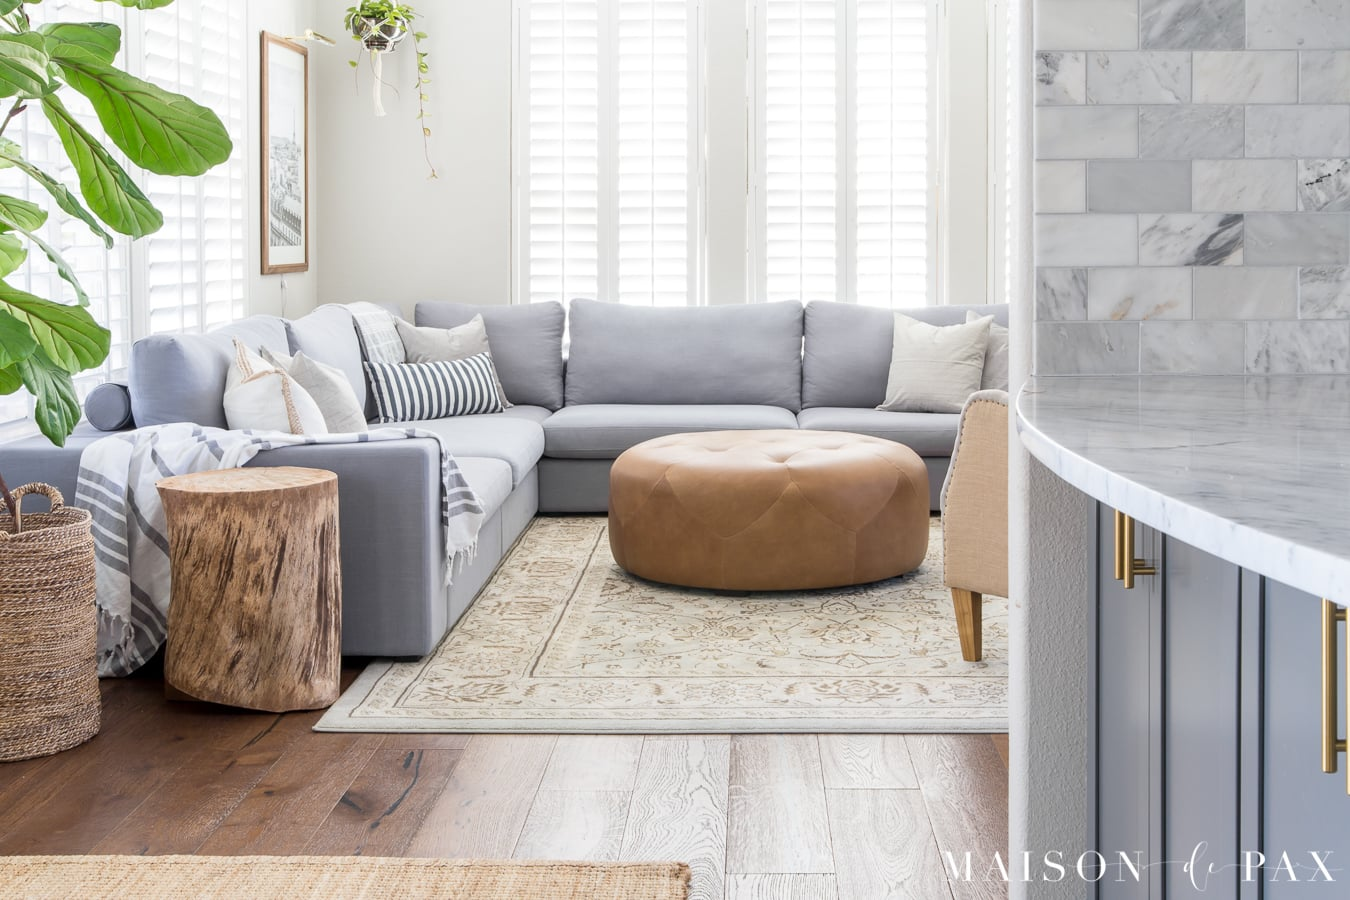 Designing a Small Living Room with a Large Sectional